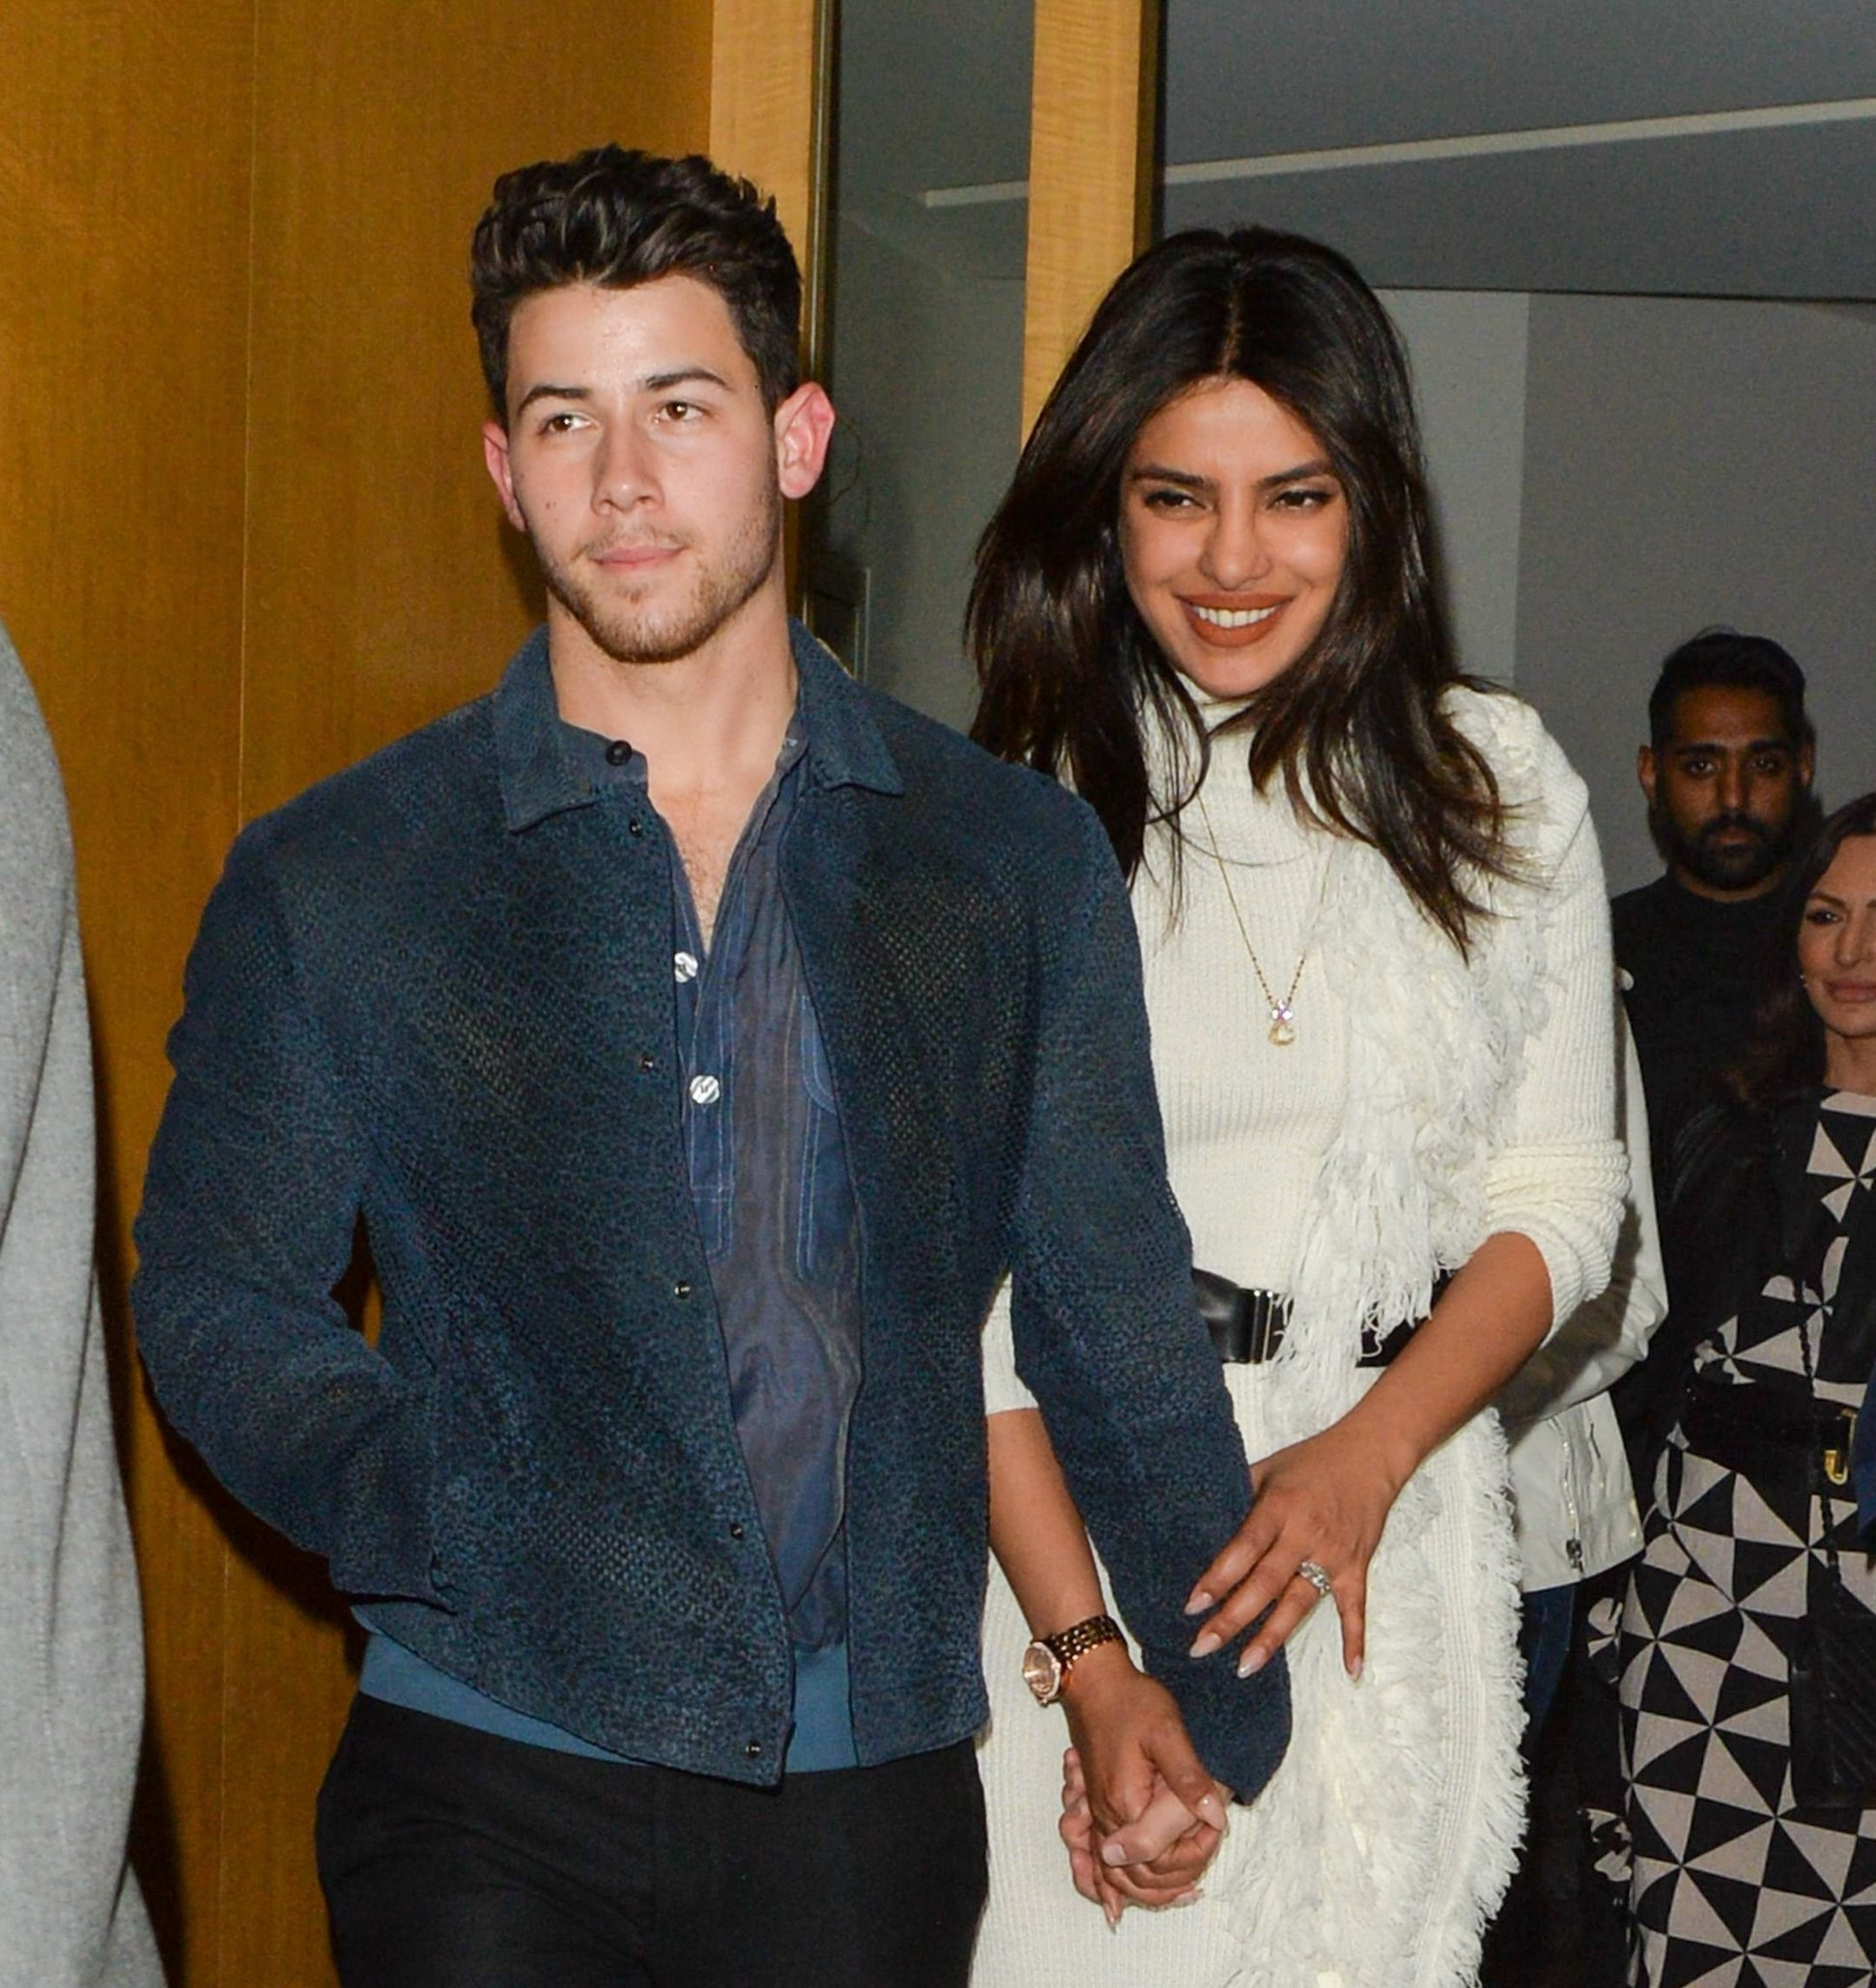 Nick Jonas and Priyanka Chopra Jonas Brothers out and about, Nobu Restaurant, London, UK - 30 May 2019, Image: 440181283, License: Rights-managed, Restrictions: , Model Release: no, Credit line: Profimedia, TEMP Rex Features